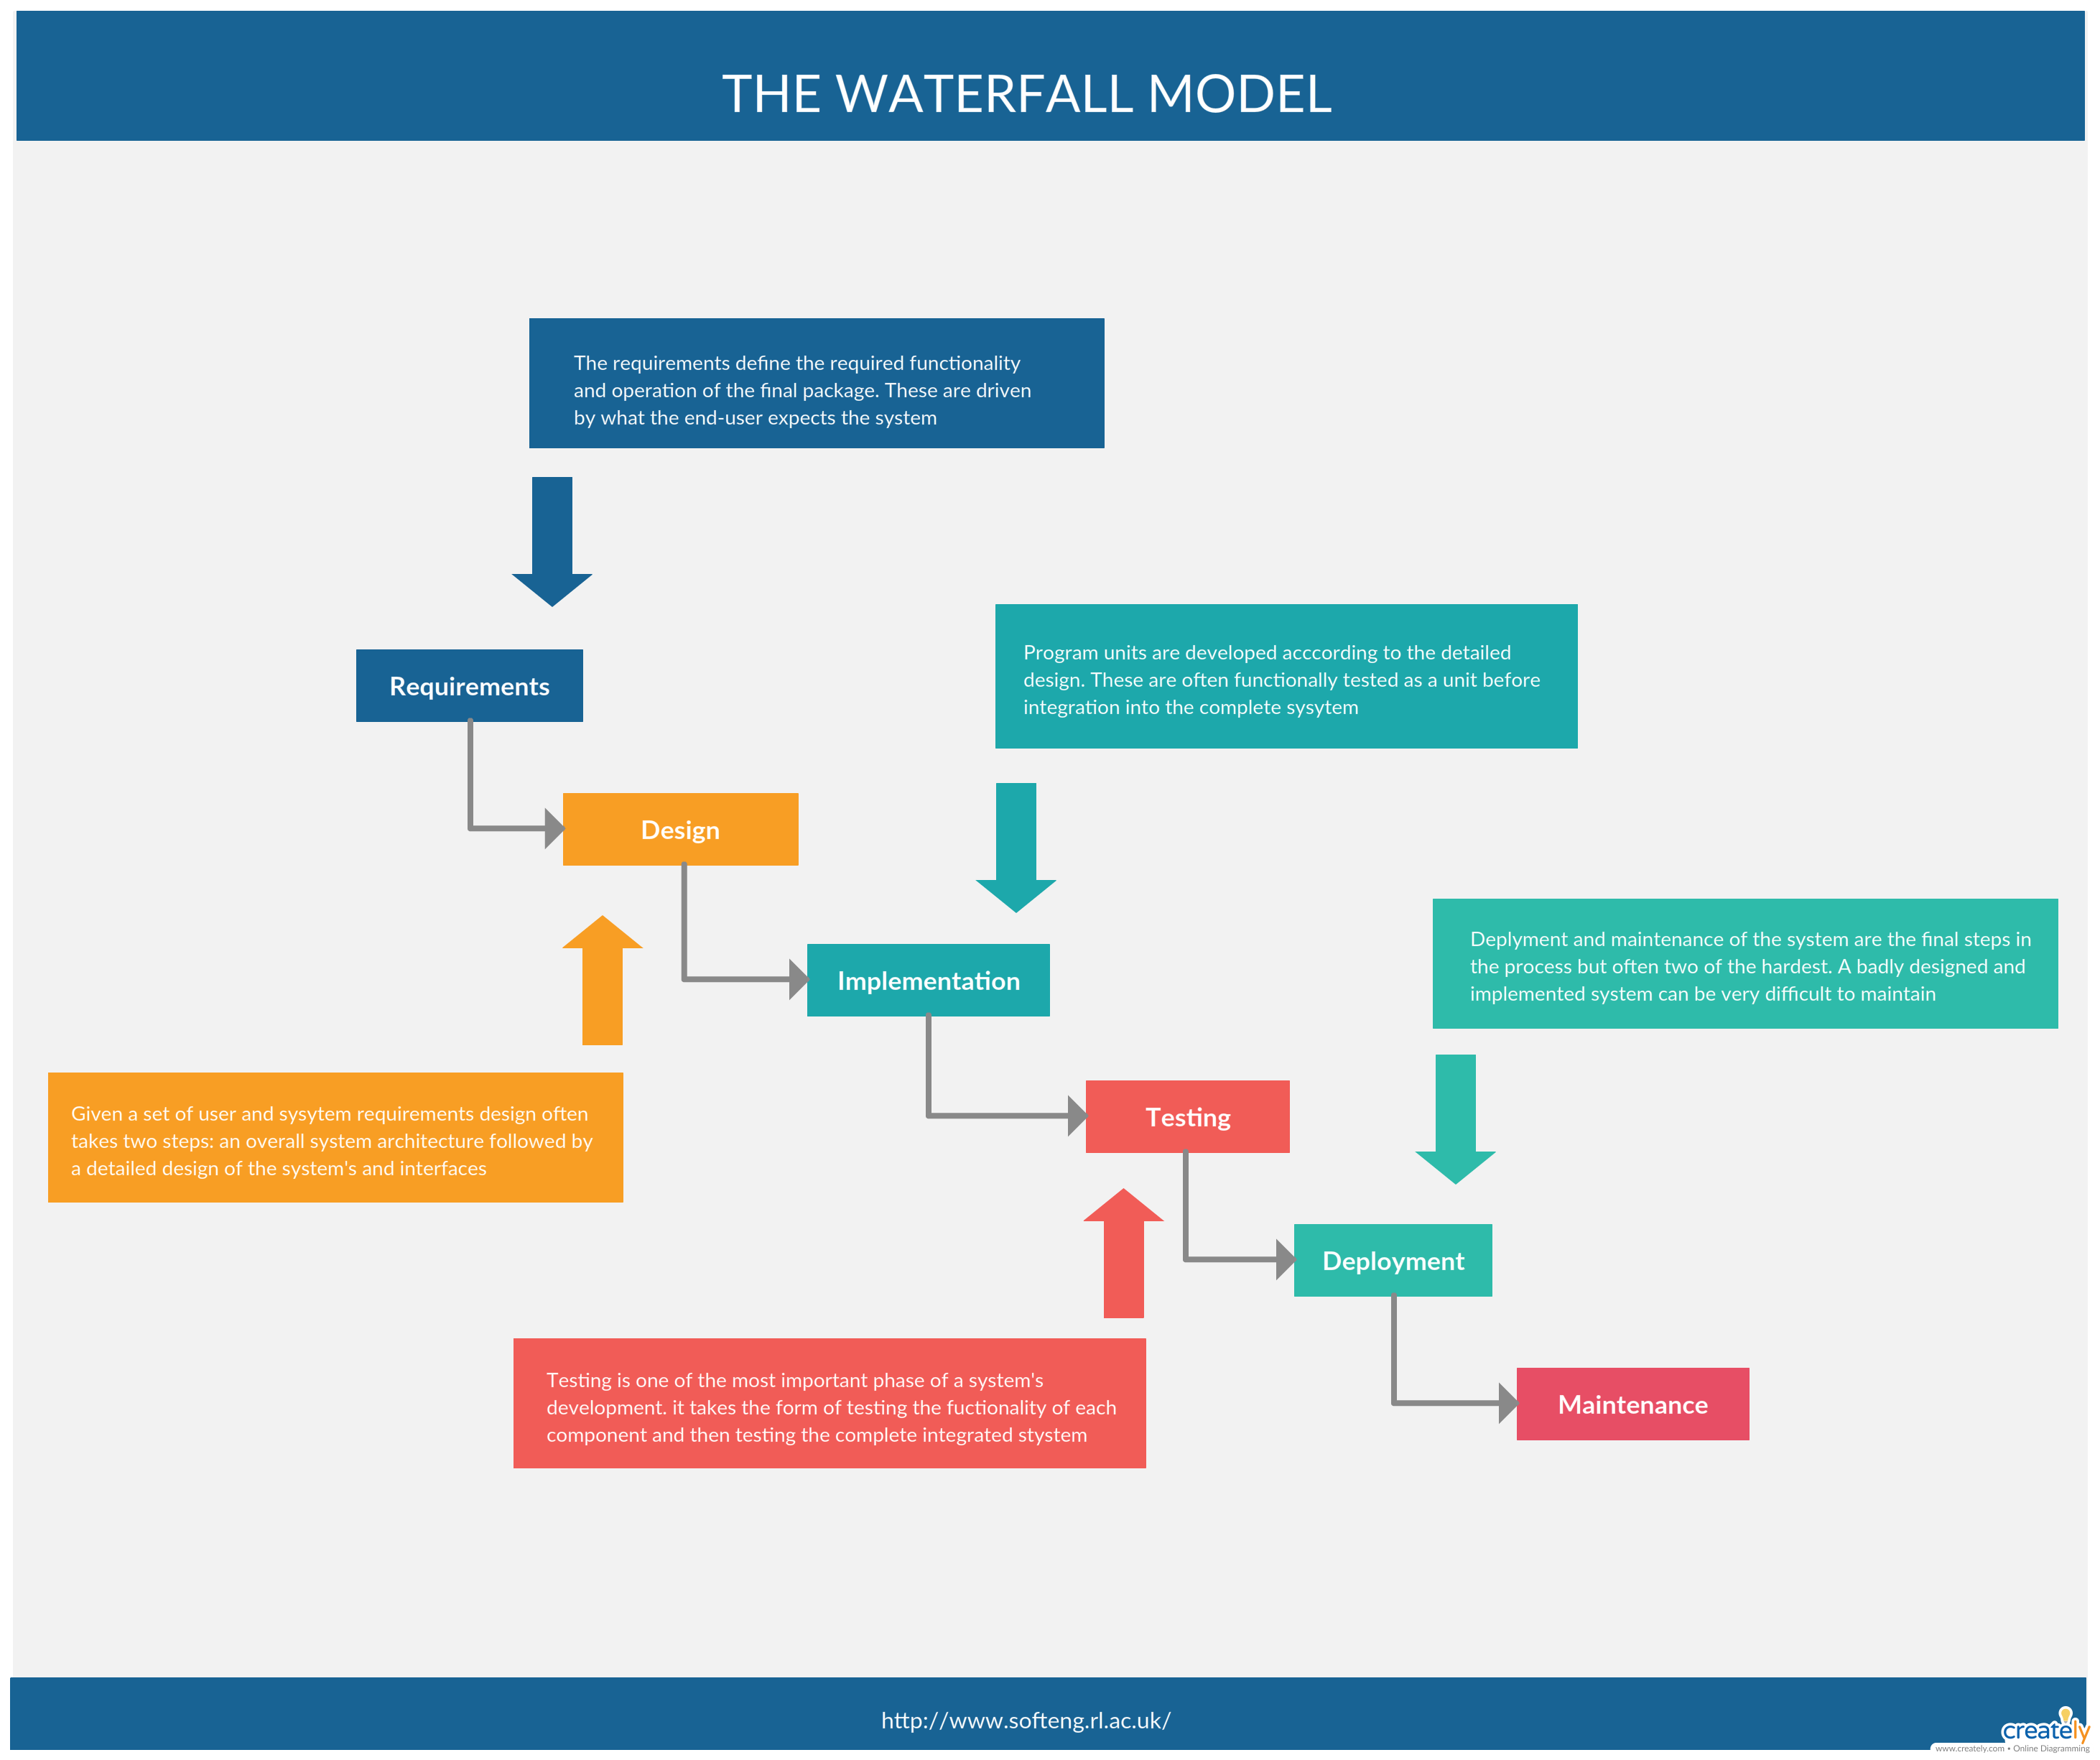 waterfall model diagram fender strat wiring seymour duncan the is a relatively